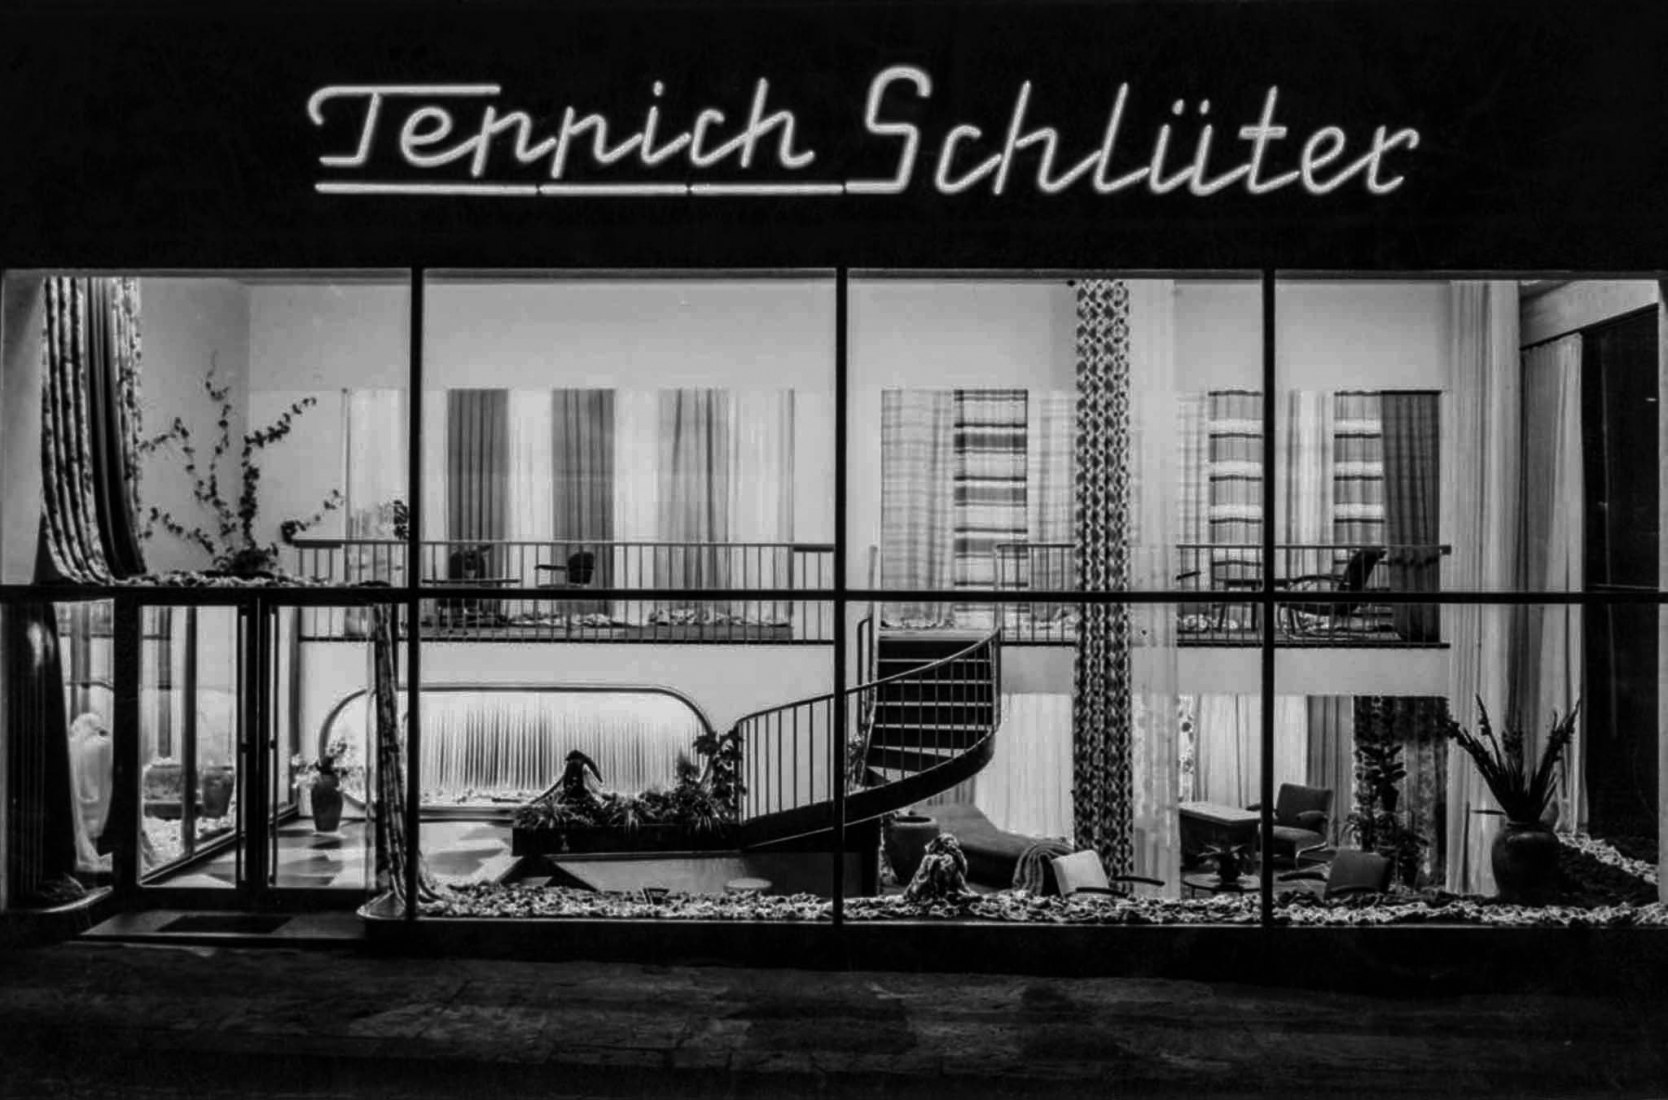 Design and extension for the upholstery shop Teppich-Schlüter (1950), by Wera Meyer-Waldeck.